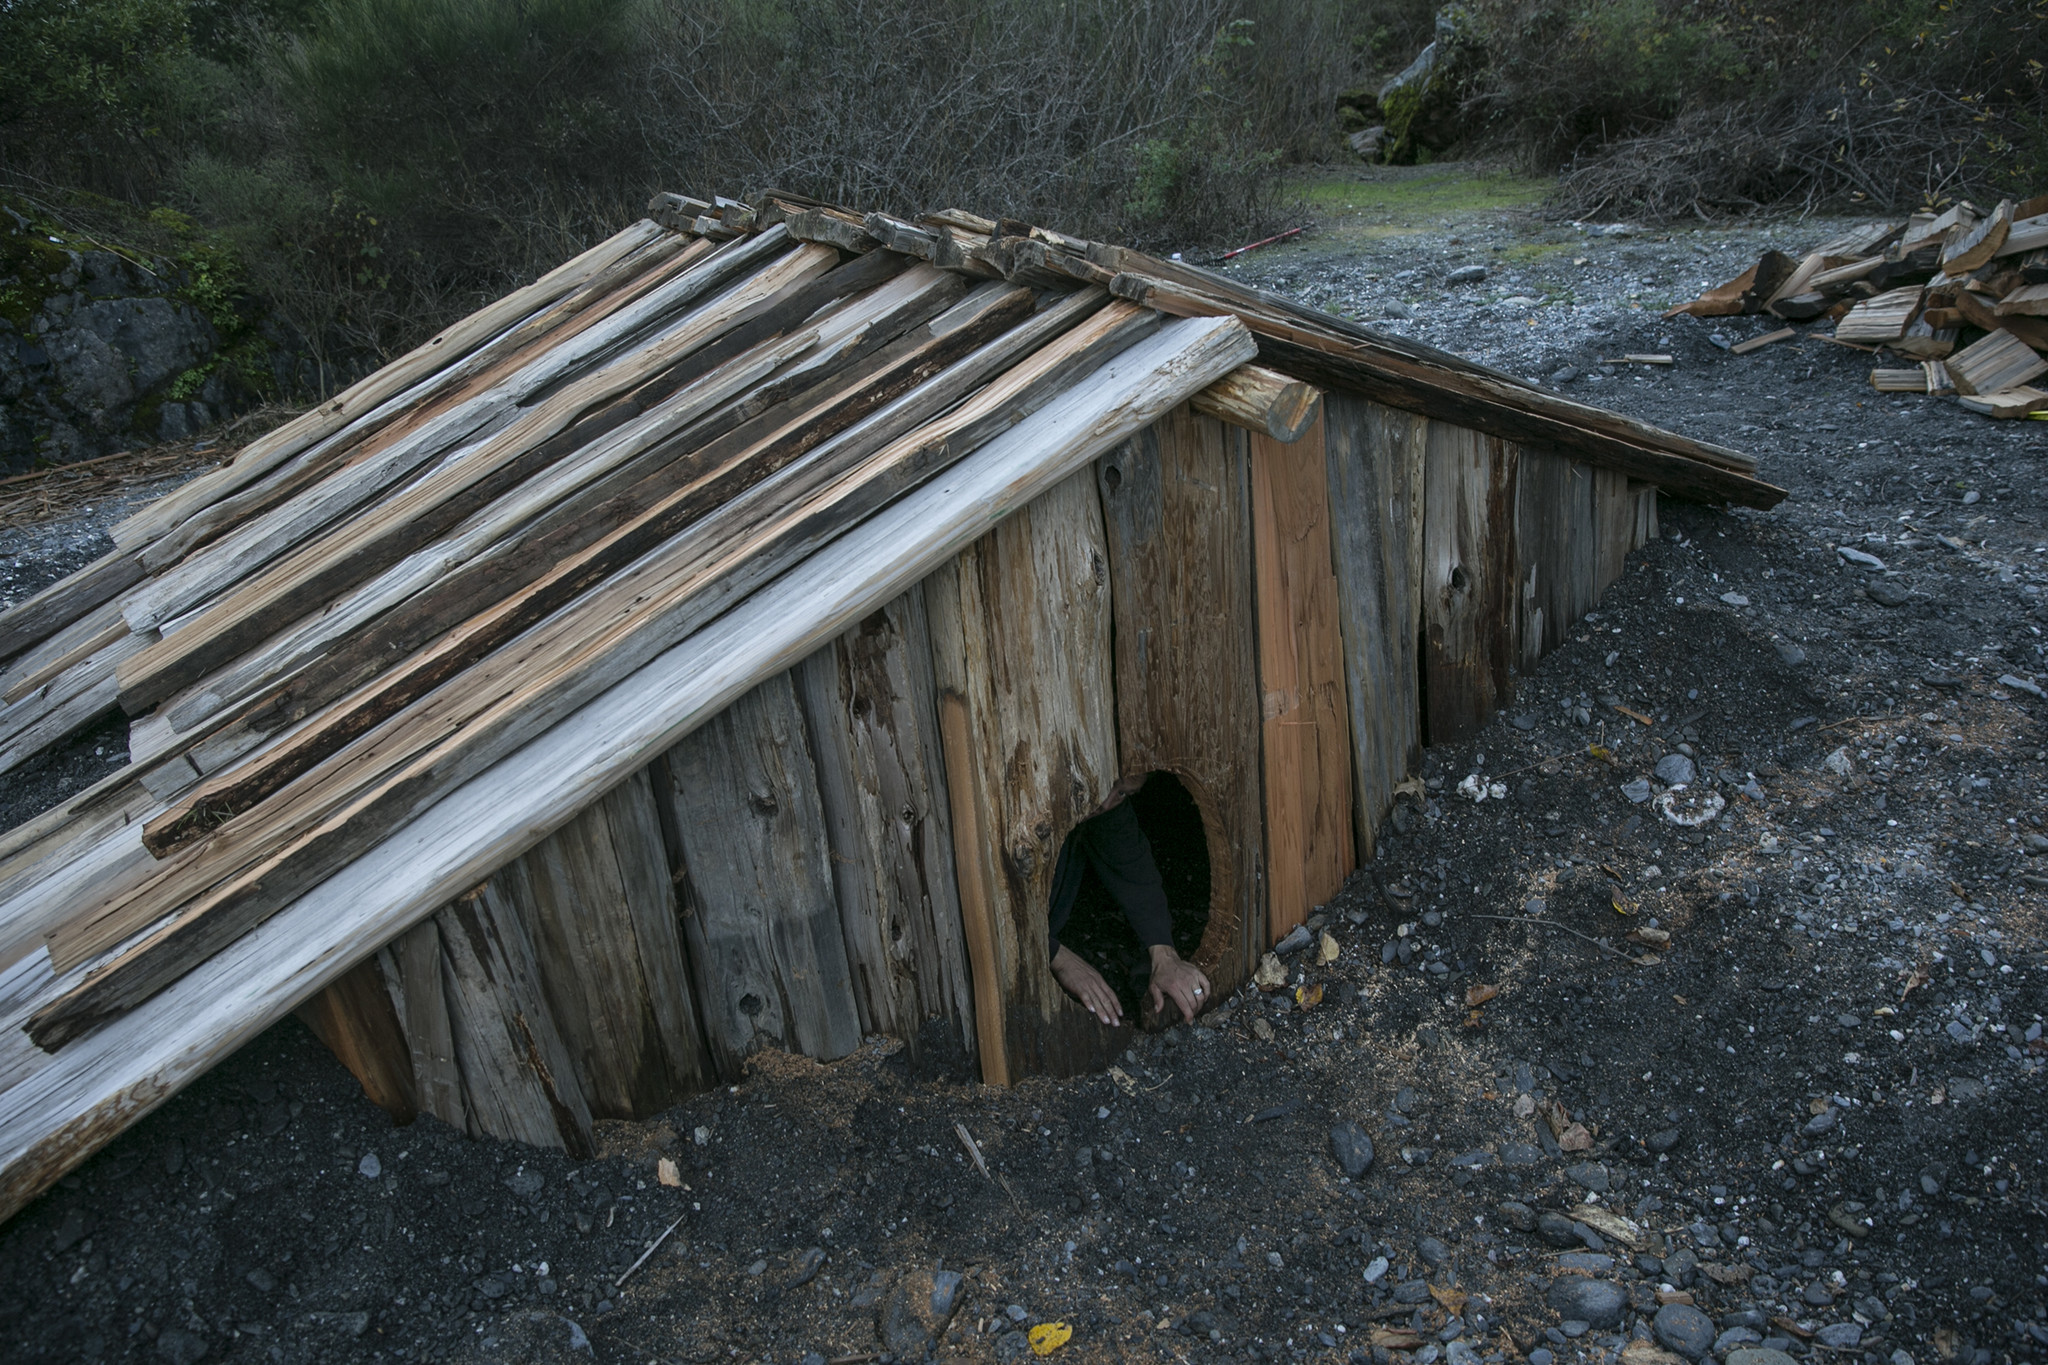 The Yurok people traditionally lived in redwood plank villages along the river. The sweat house, lik